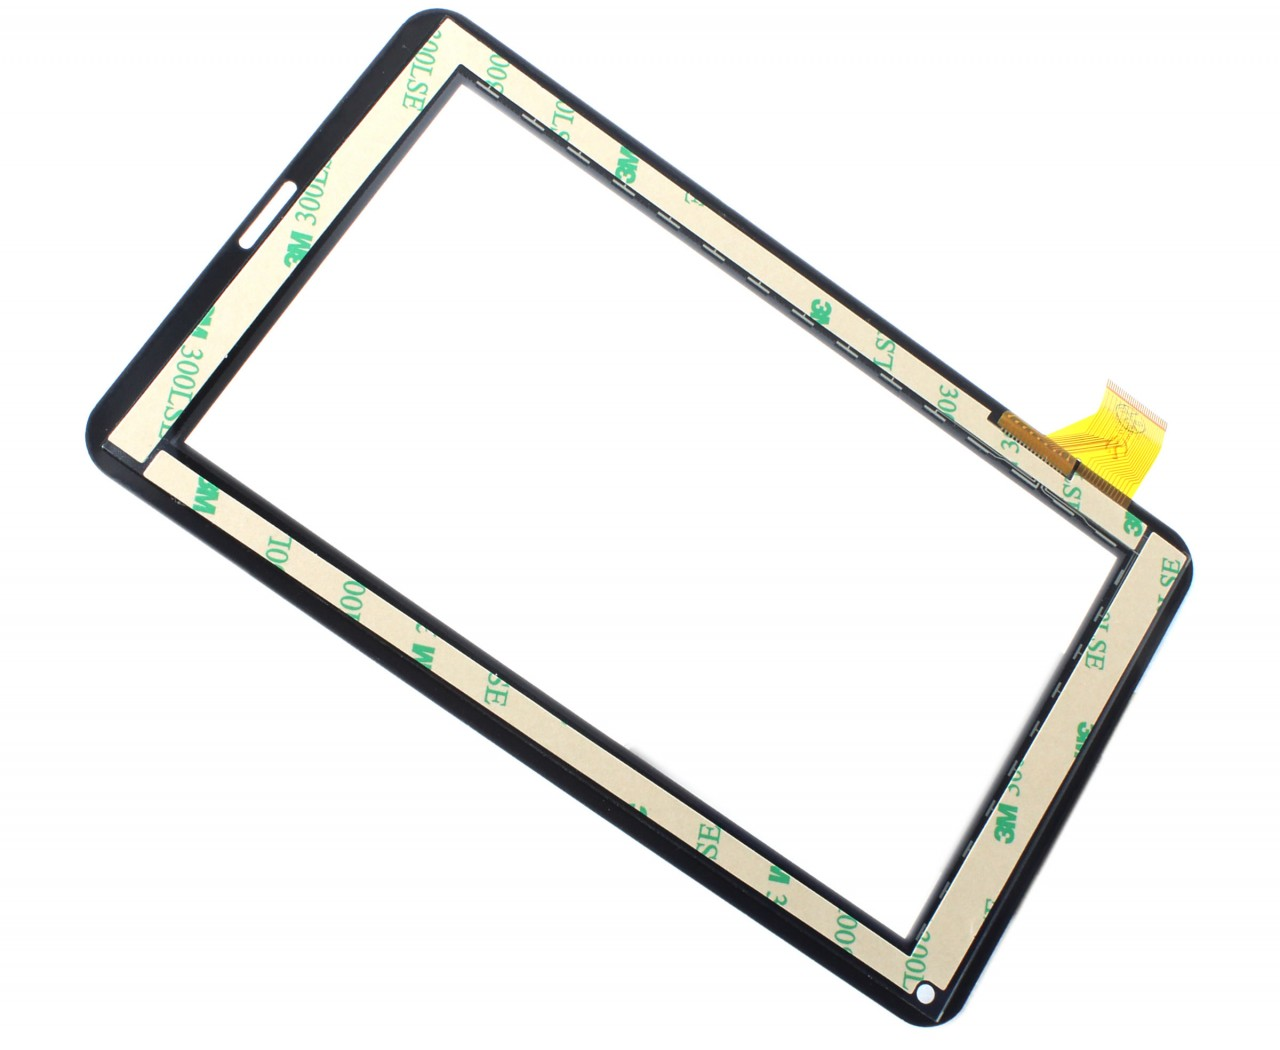 Touchscreen Digitizer Serioux S718TAB Geam Sticla Tableta imagine powerlaptop.ro 2021